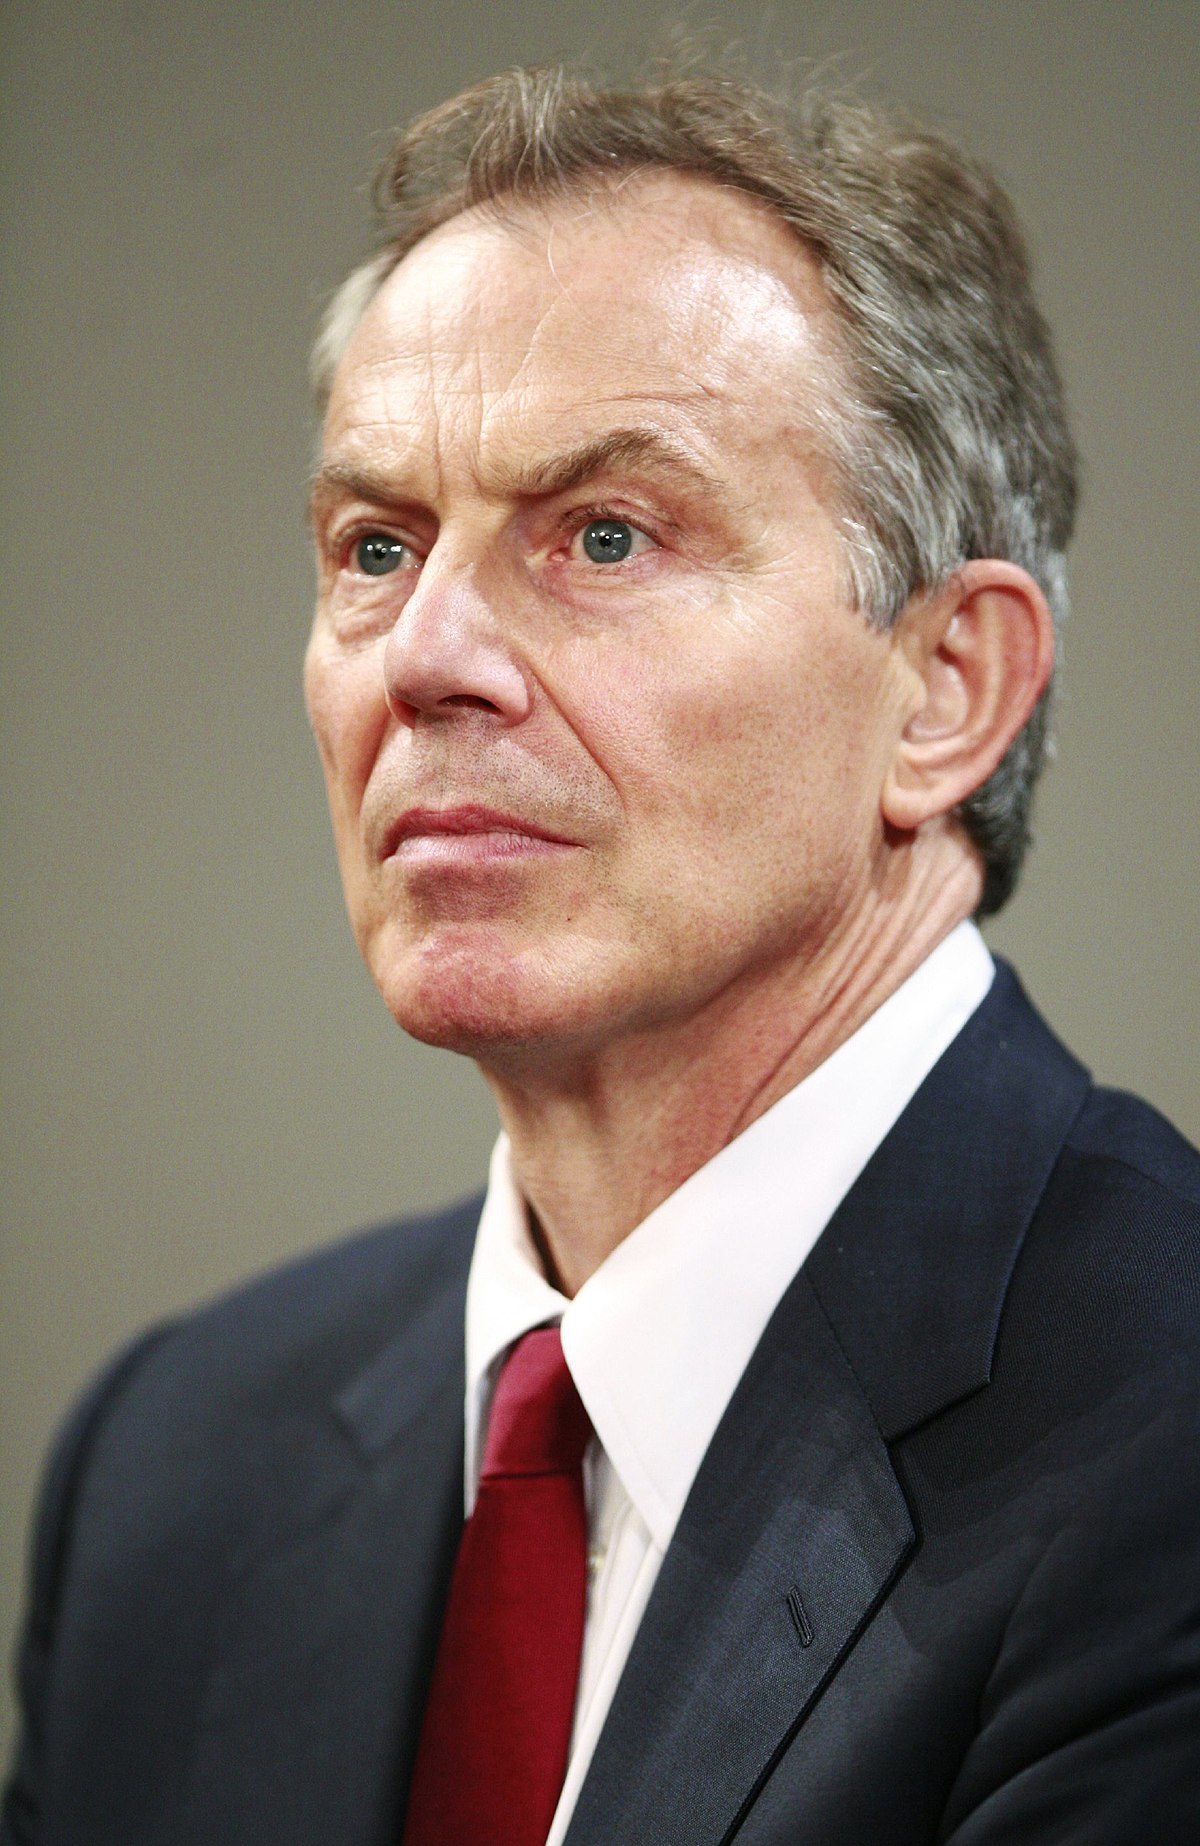 tony blair - photo #20